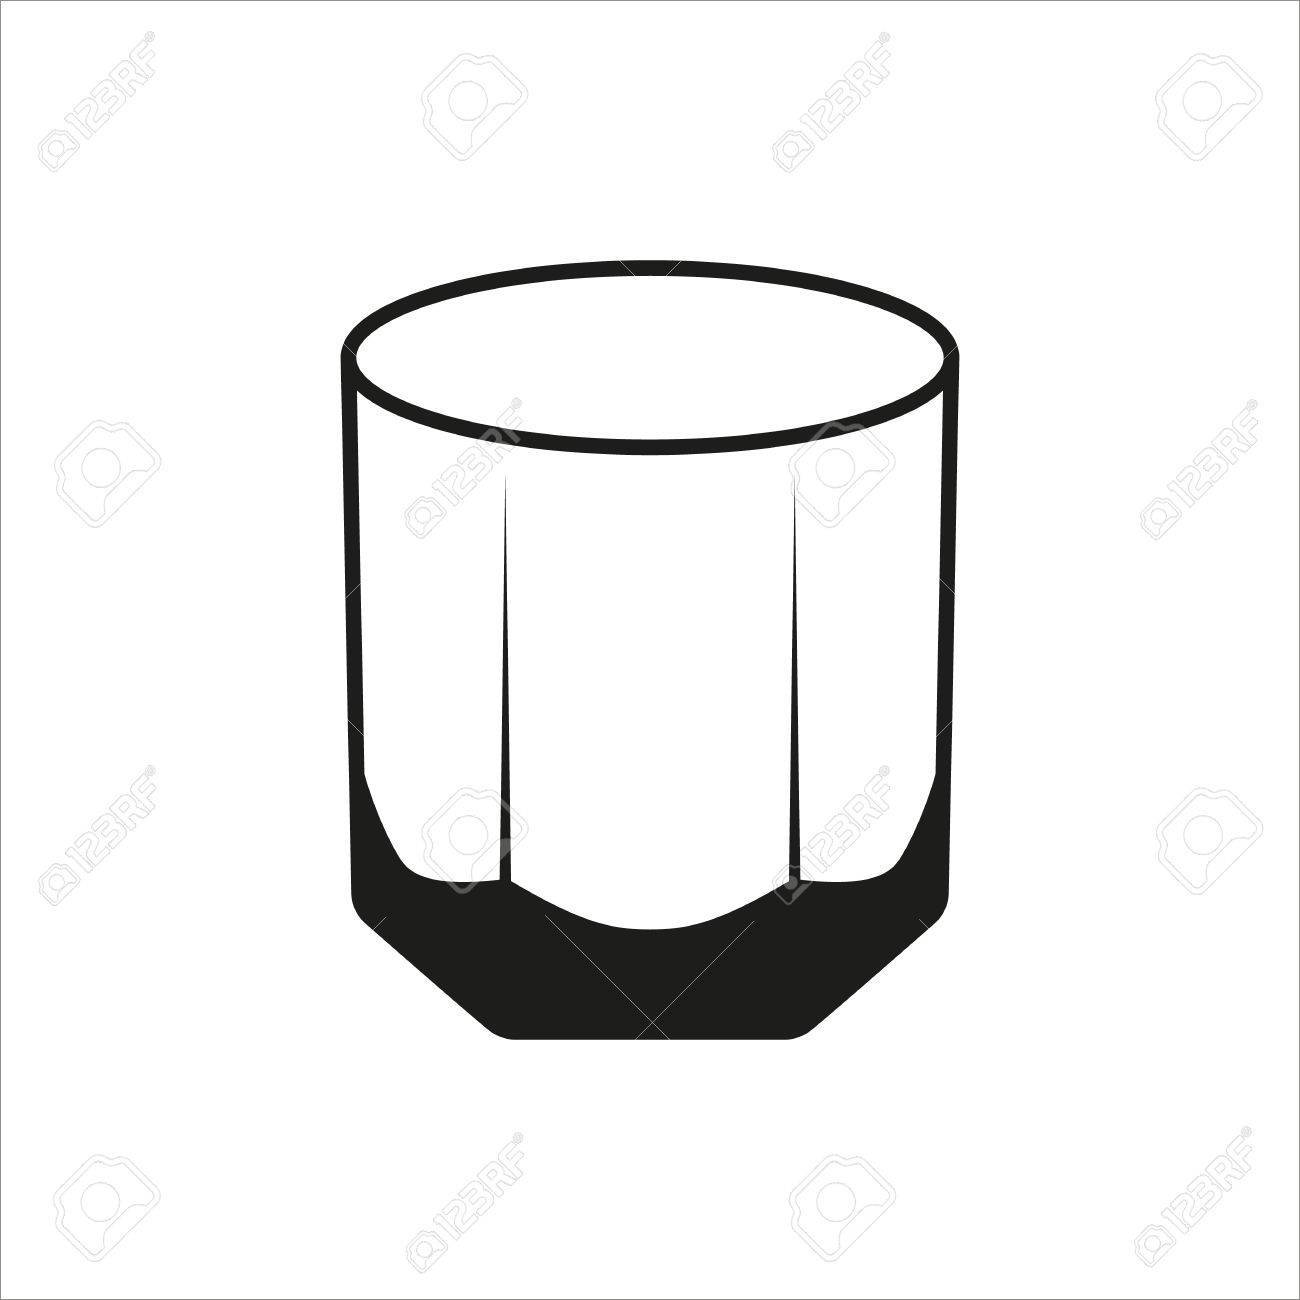 Rocks glass clipart picture free stock Rocks Glass Tumbler sign simple icon » Clipart Portal picture free stock